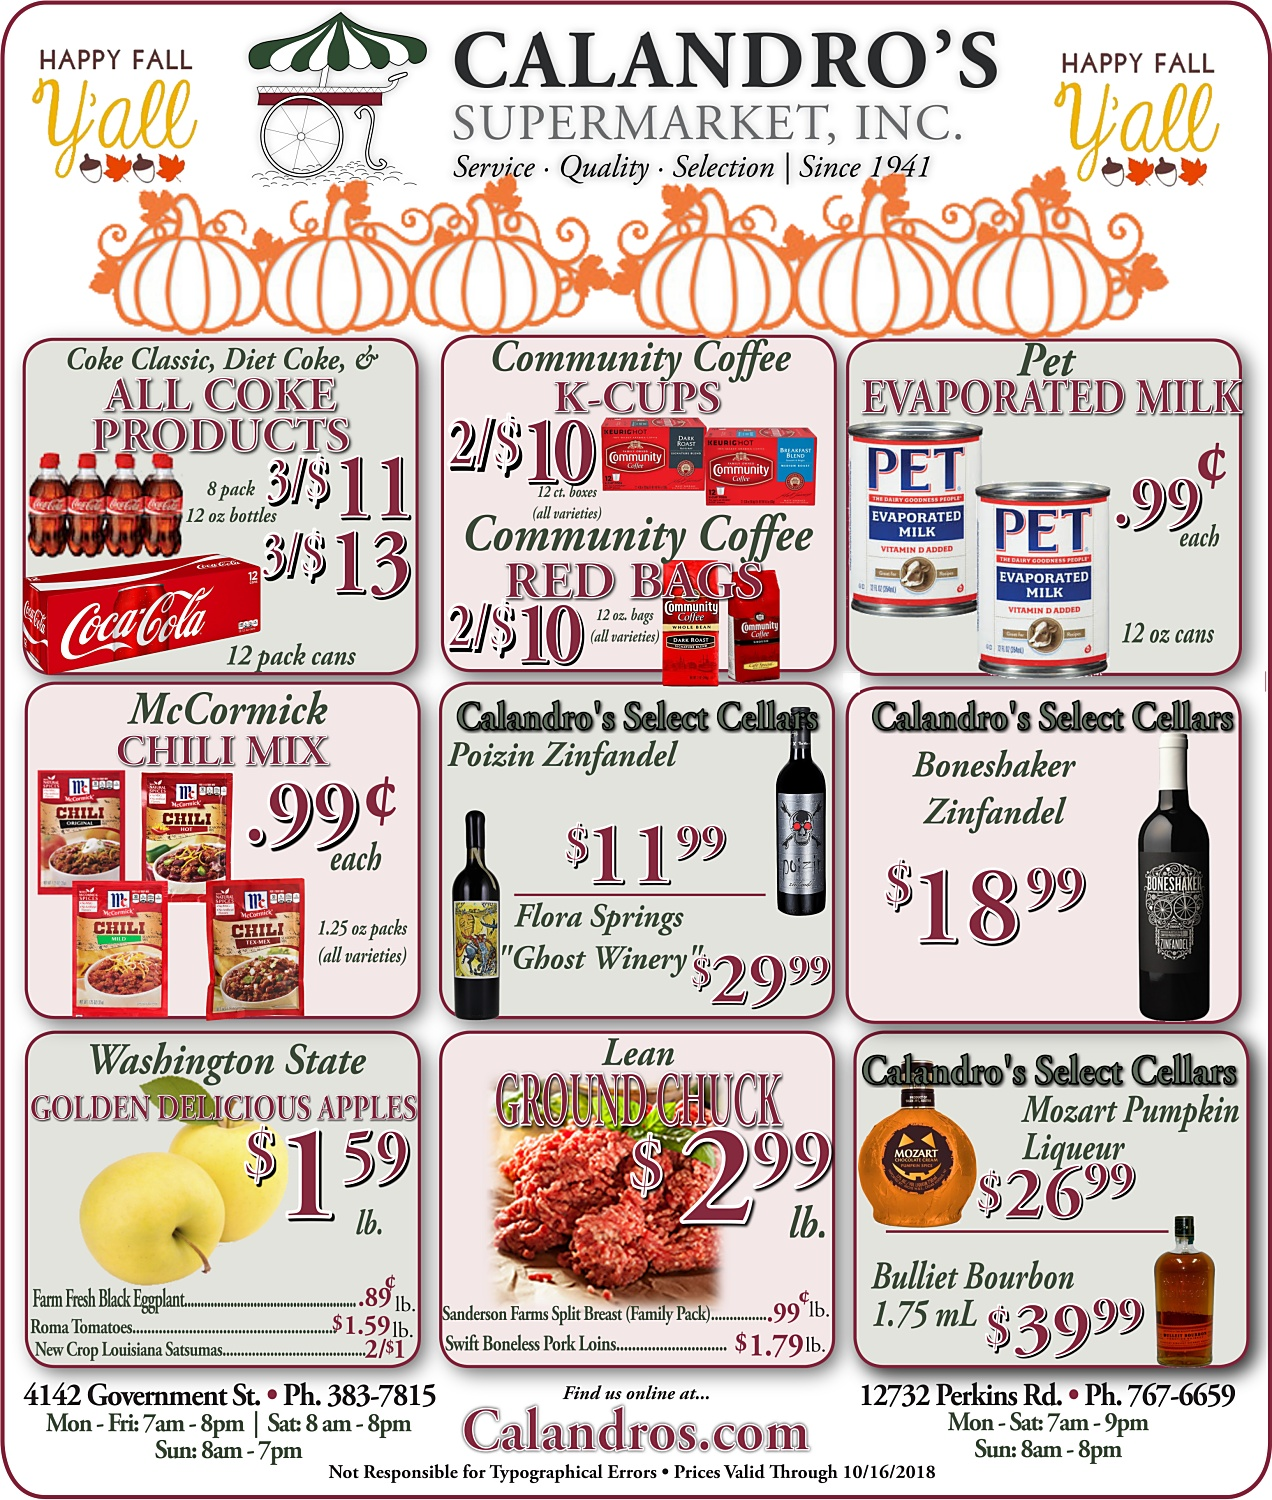 Amazing Weekly Deals @ Calandro's this week (10/11/2018)